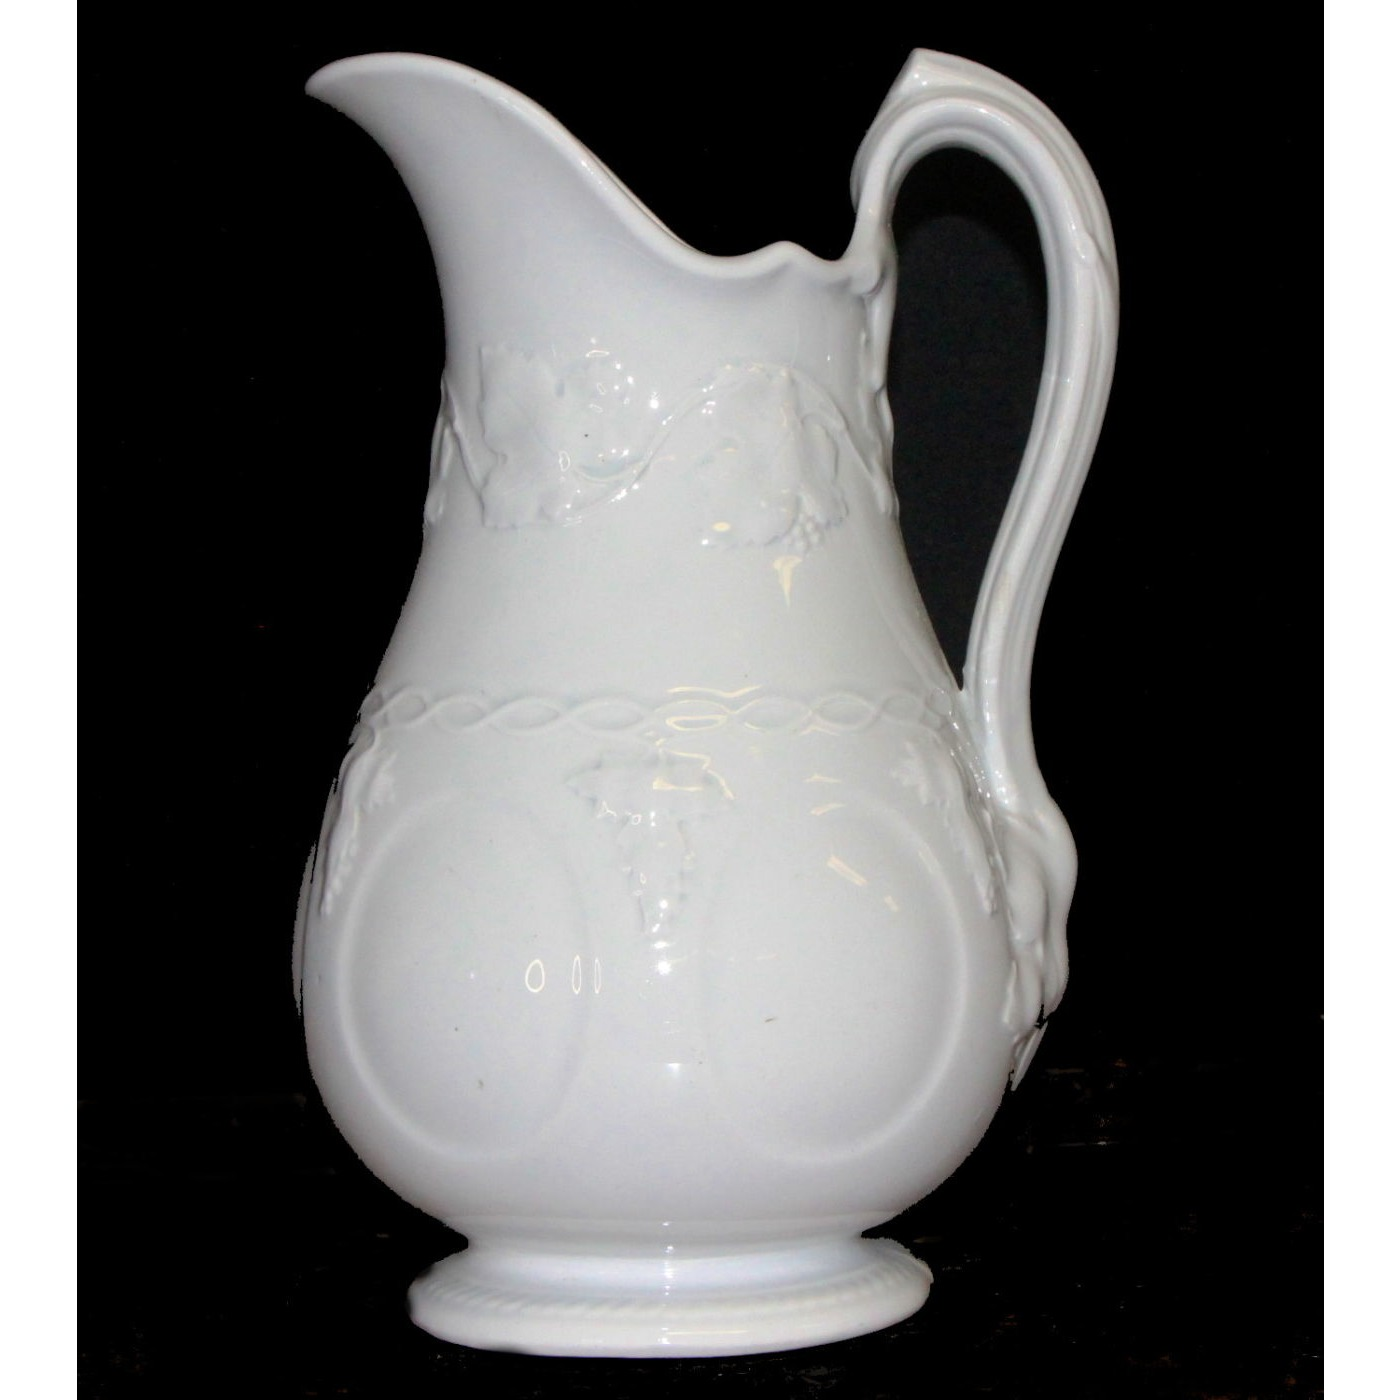 Lovely Tall Ironstone Ewer Pitcher - Vintage Shape